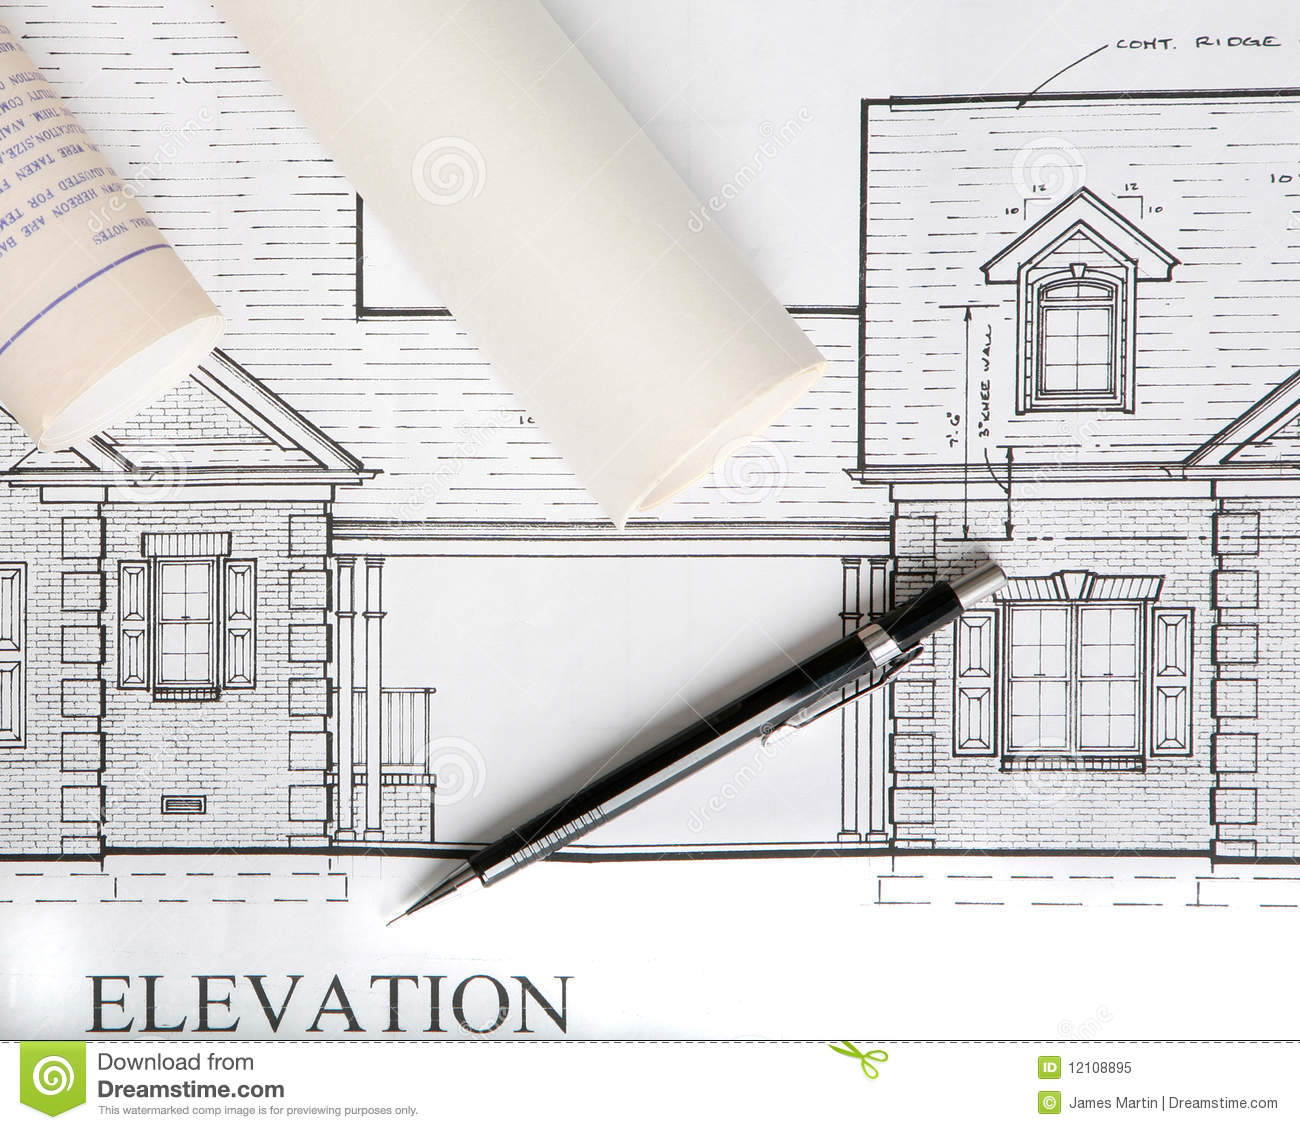 Http Dreamstime Com Royalty Free Stock Photo Architectural House Drawings Image12108895